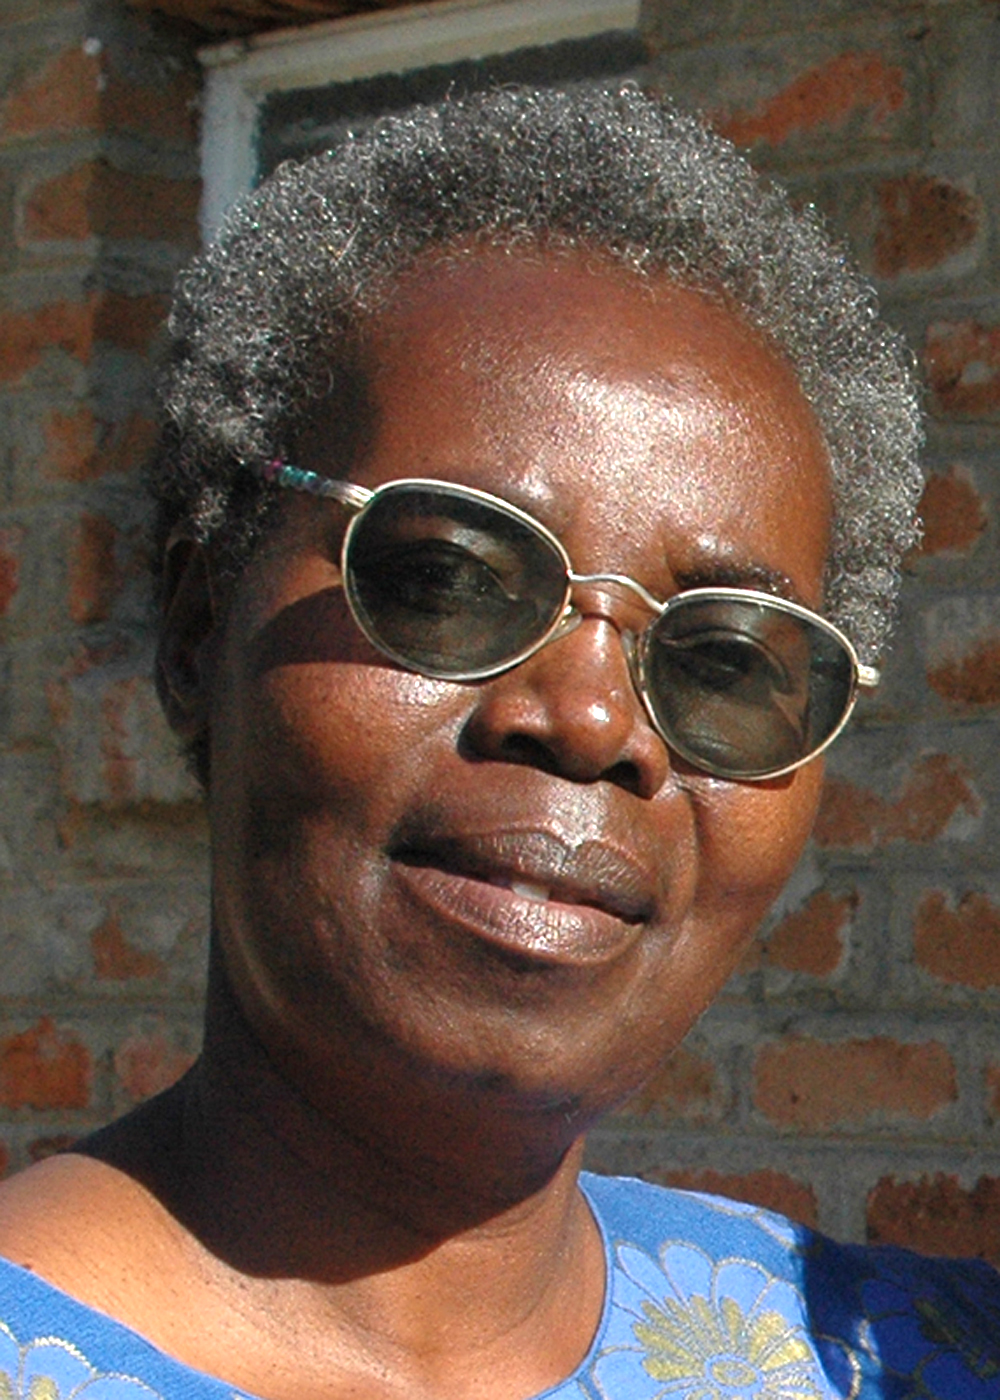 ELIZABETH HALALE, AIDED CLINIC DIRECTOR